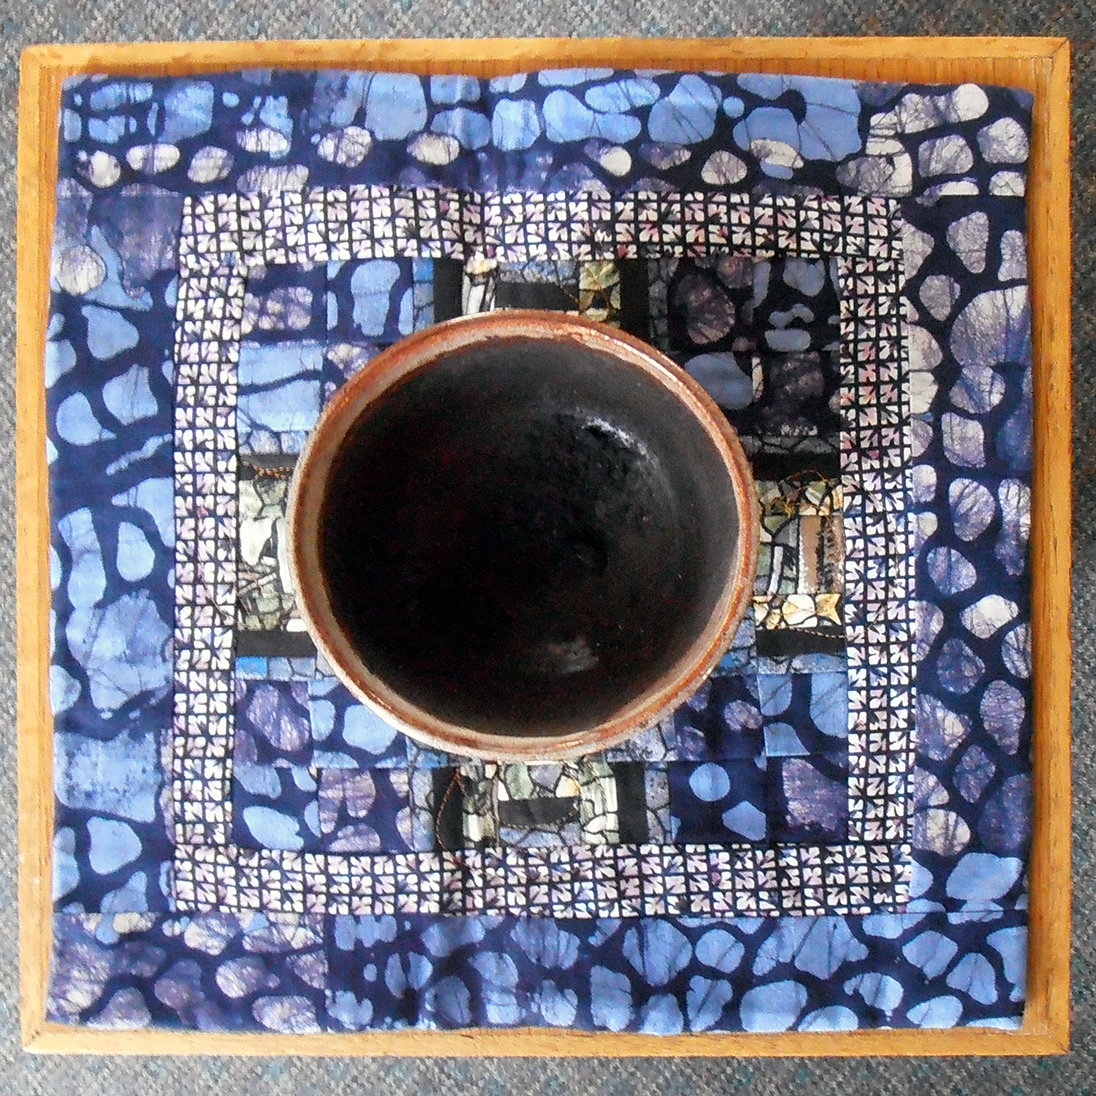 Event: Ash Wednesday Service